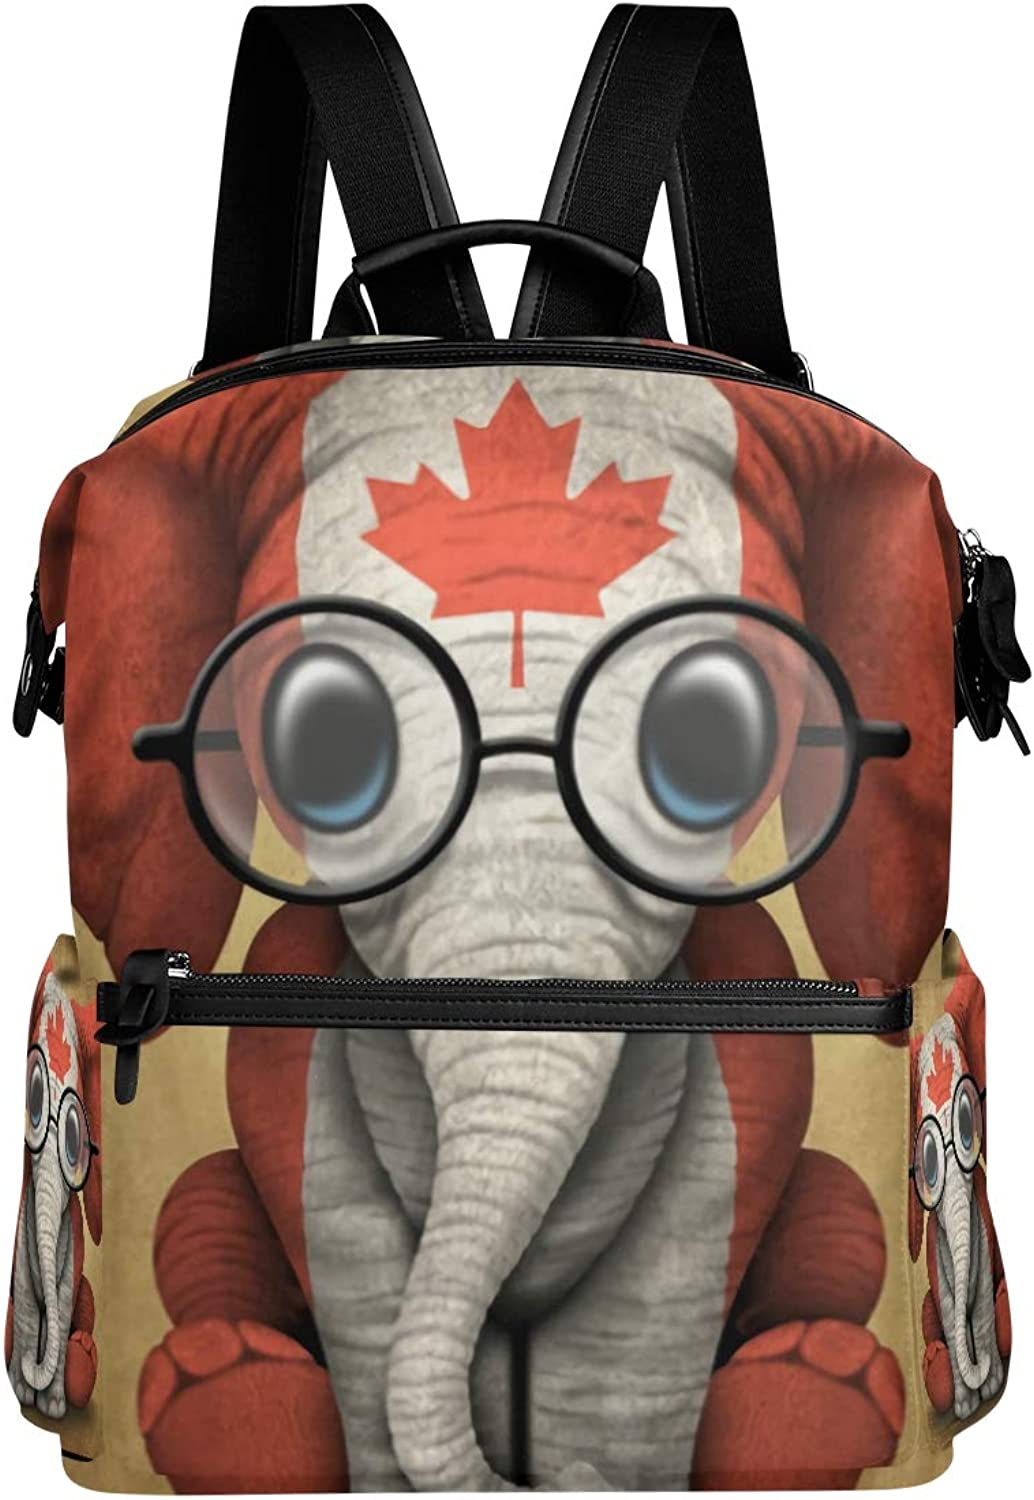 MONTOJ Baby Elephant with Glasses and Canadian Flag Leather Travel Bag Campus Backpack